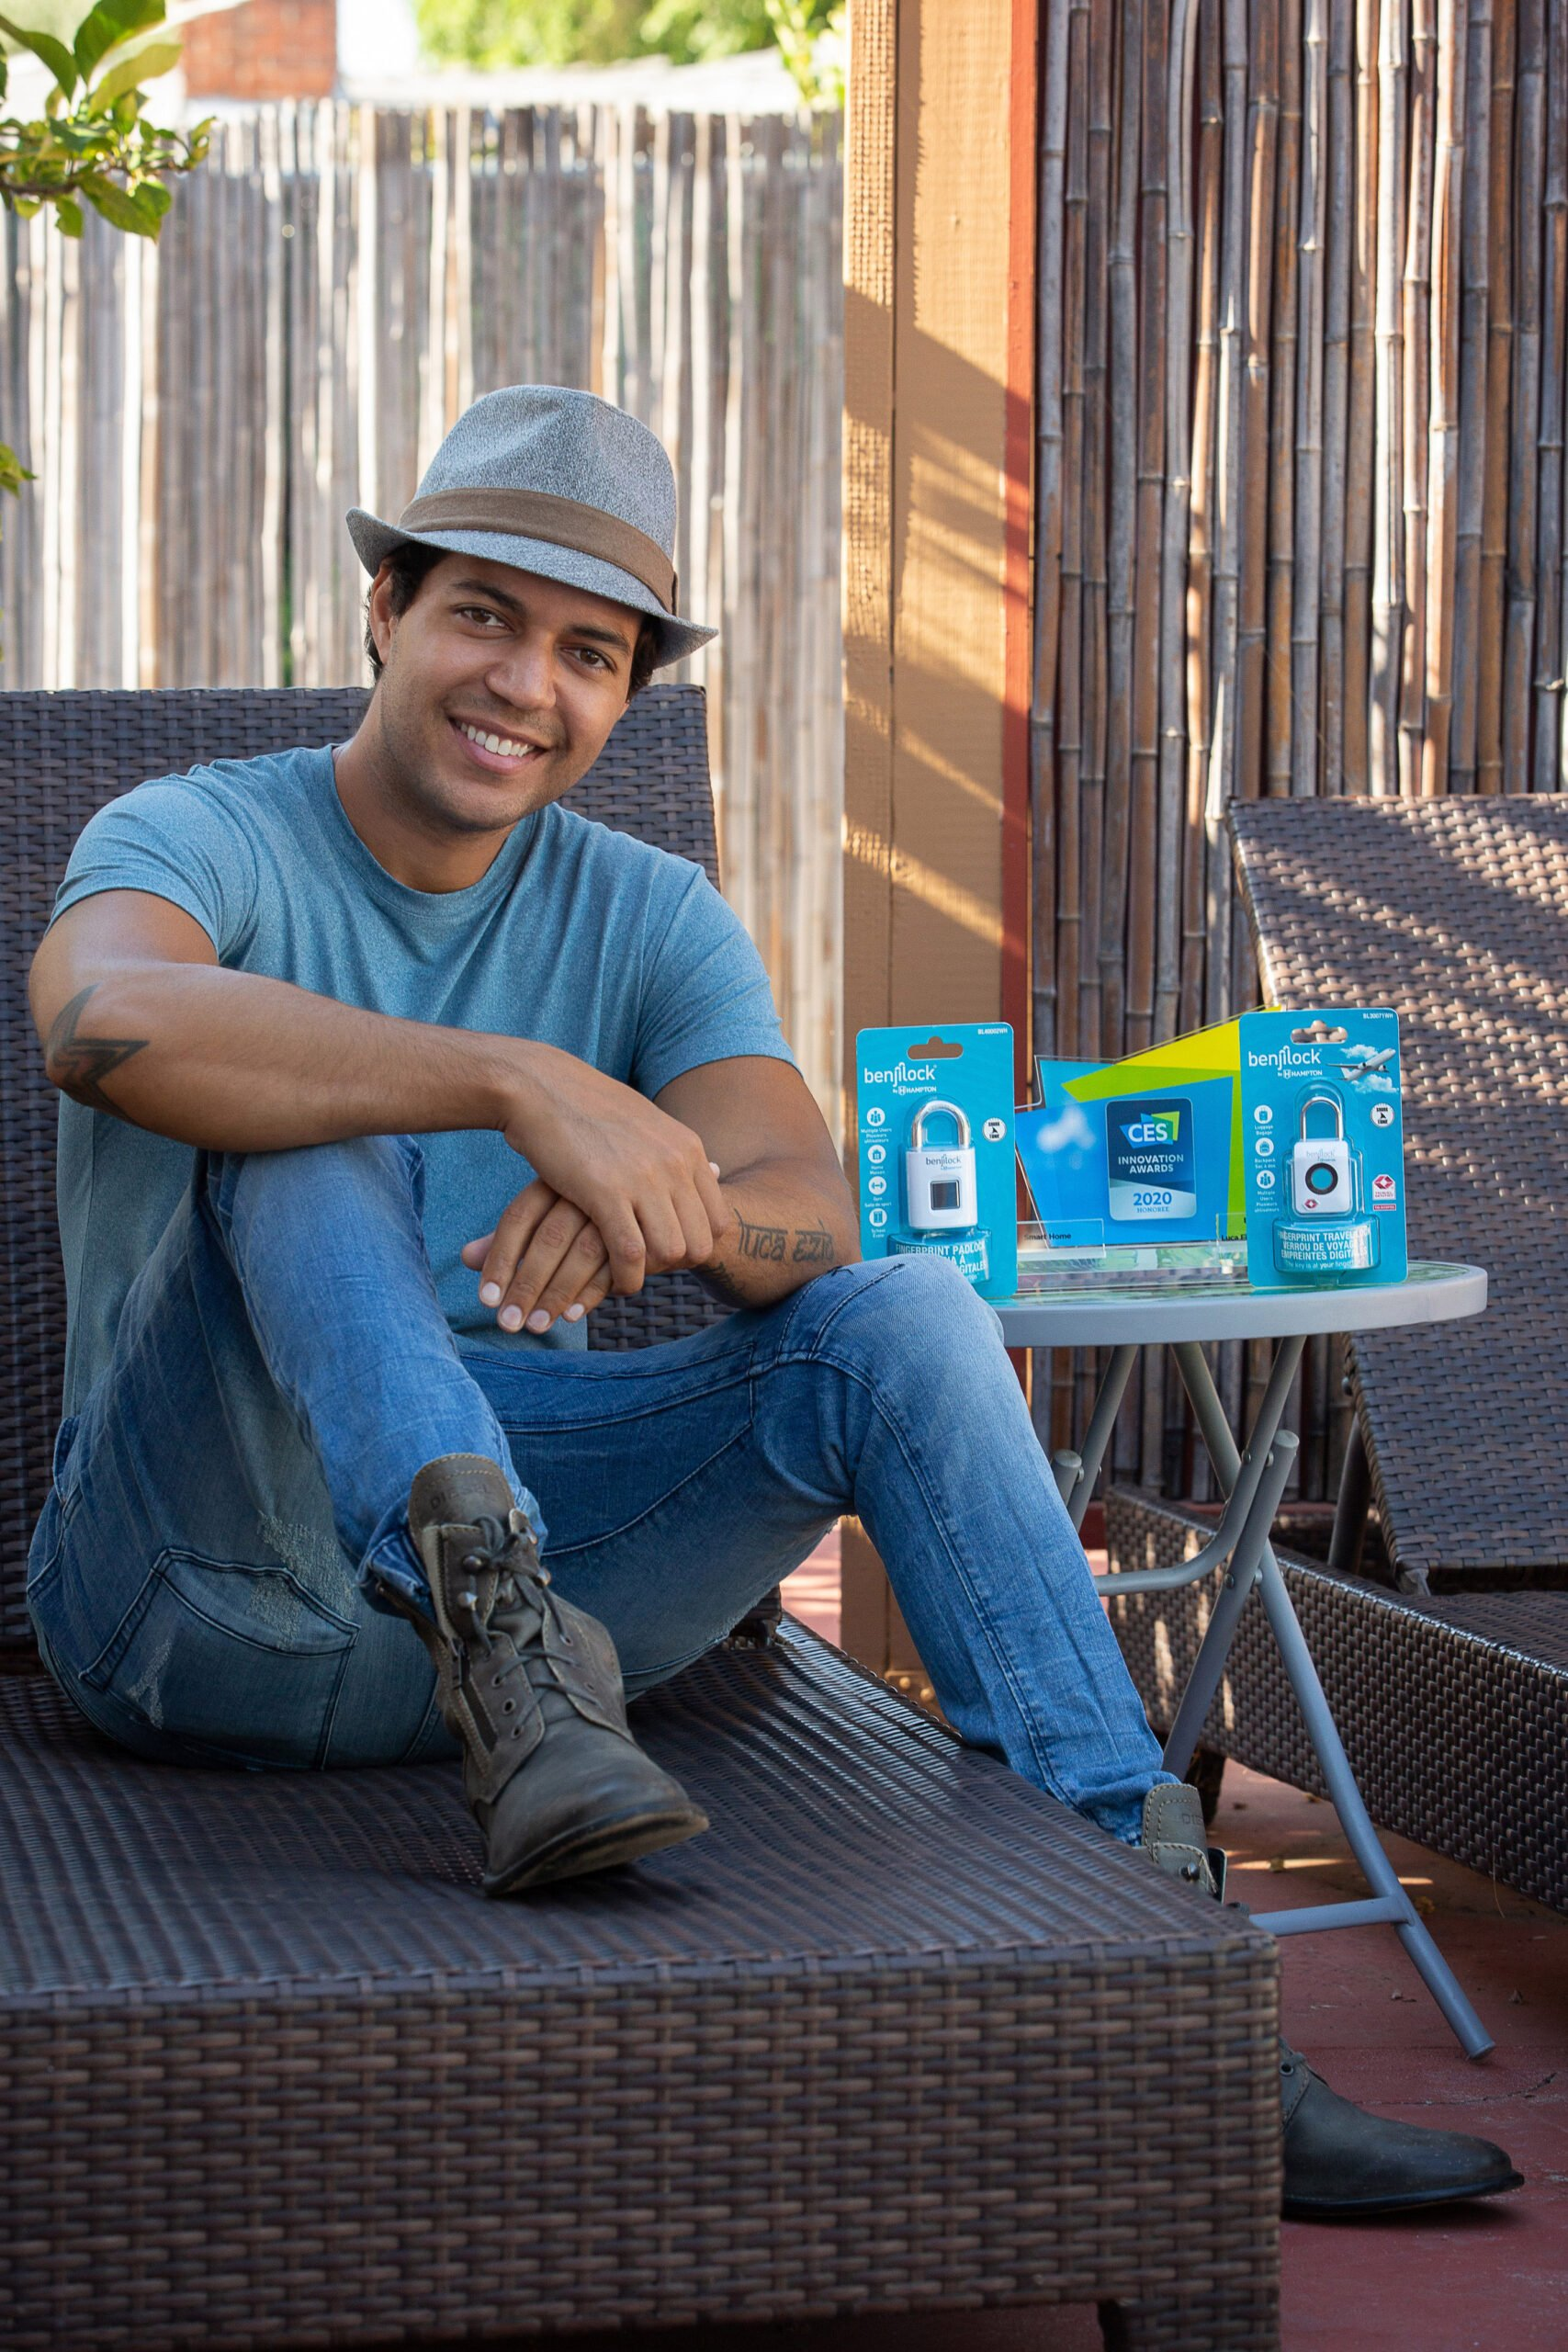 Changing the Perception of Padlocks: Robbie Cabral, Founder & CEO of BenjiLock, Joins Tech's Biggest Thinkers at CES 2021